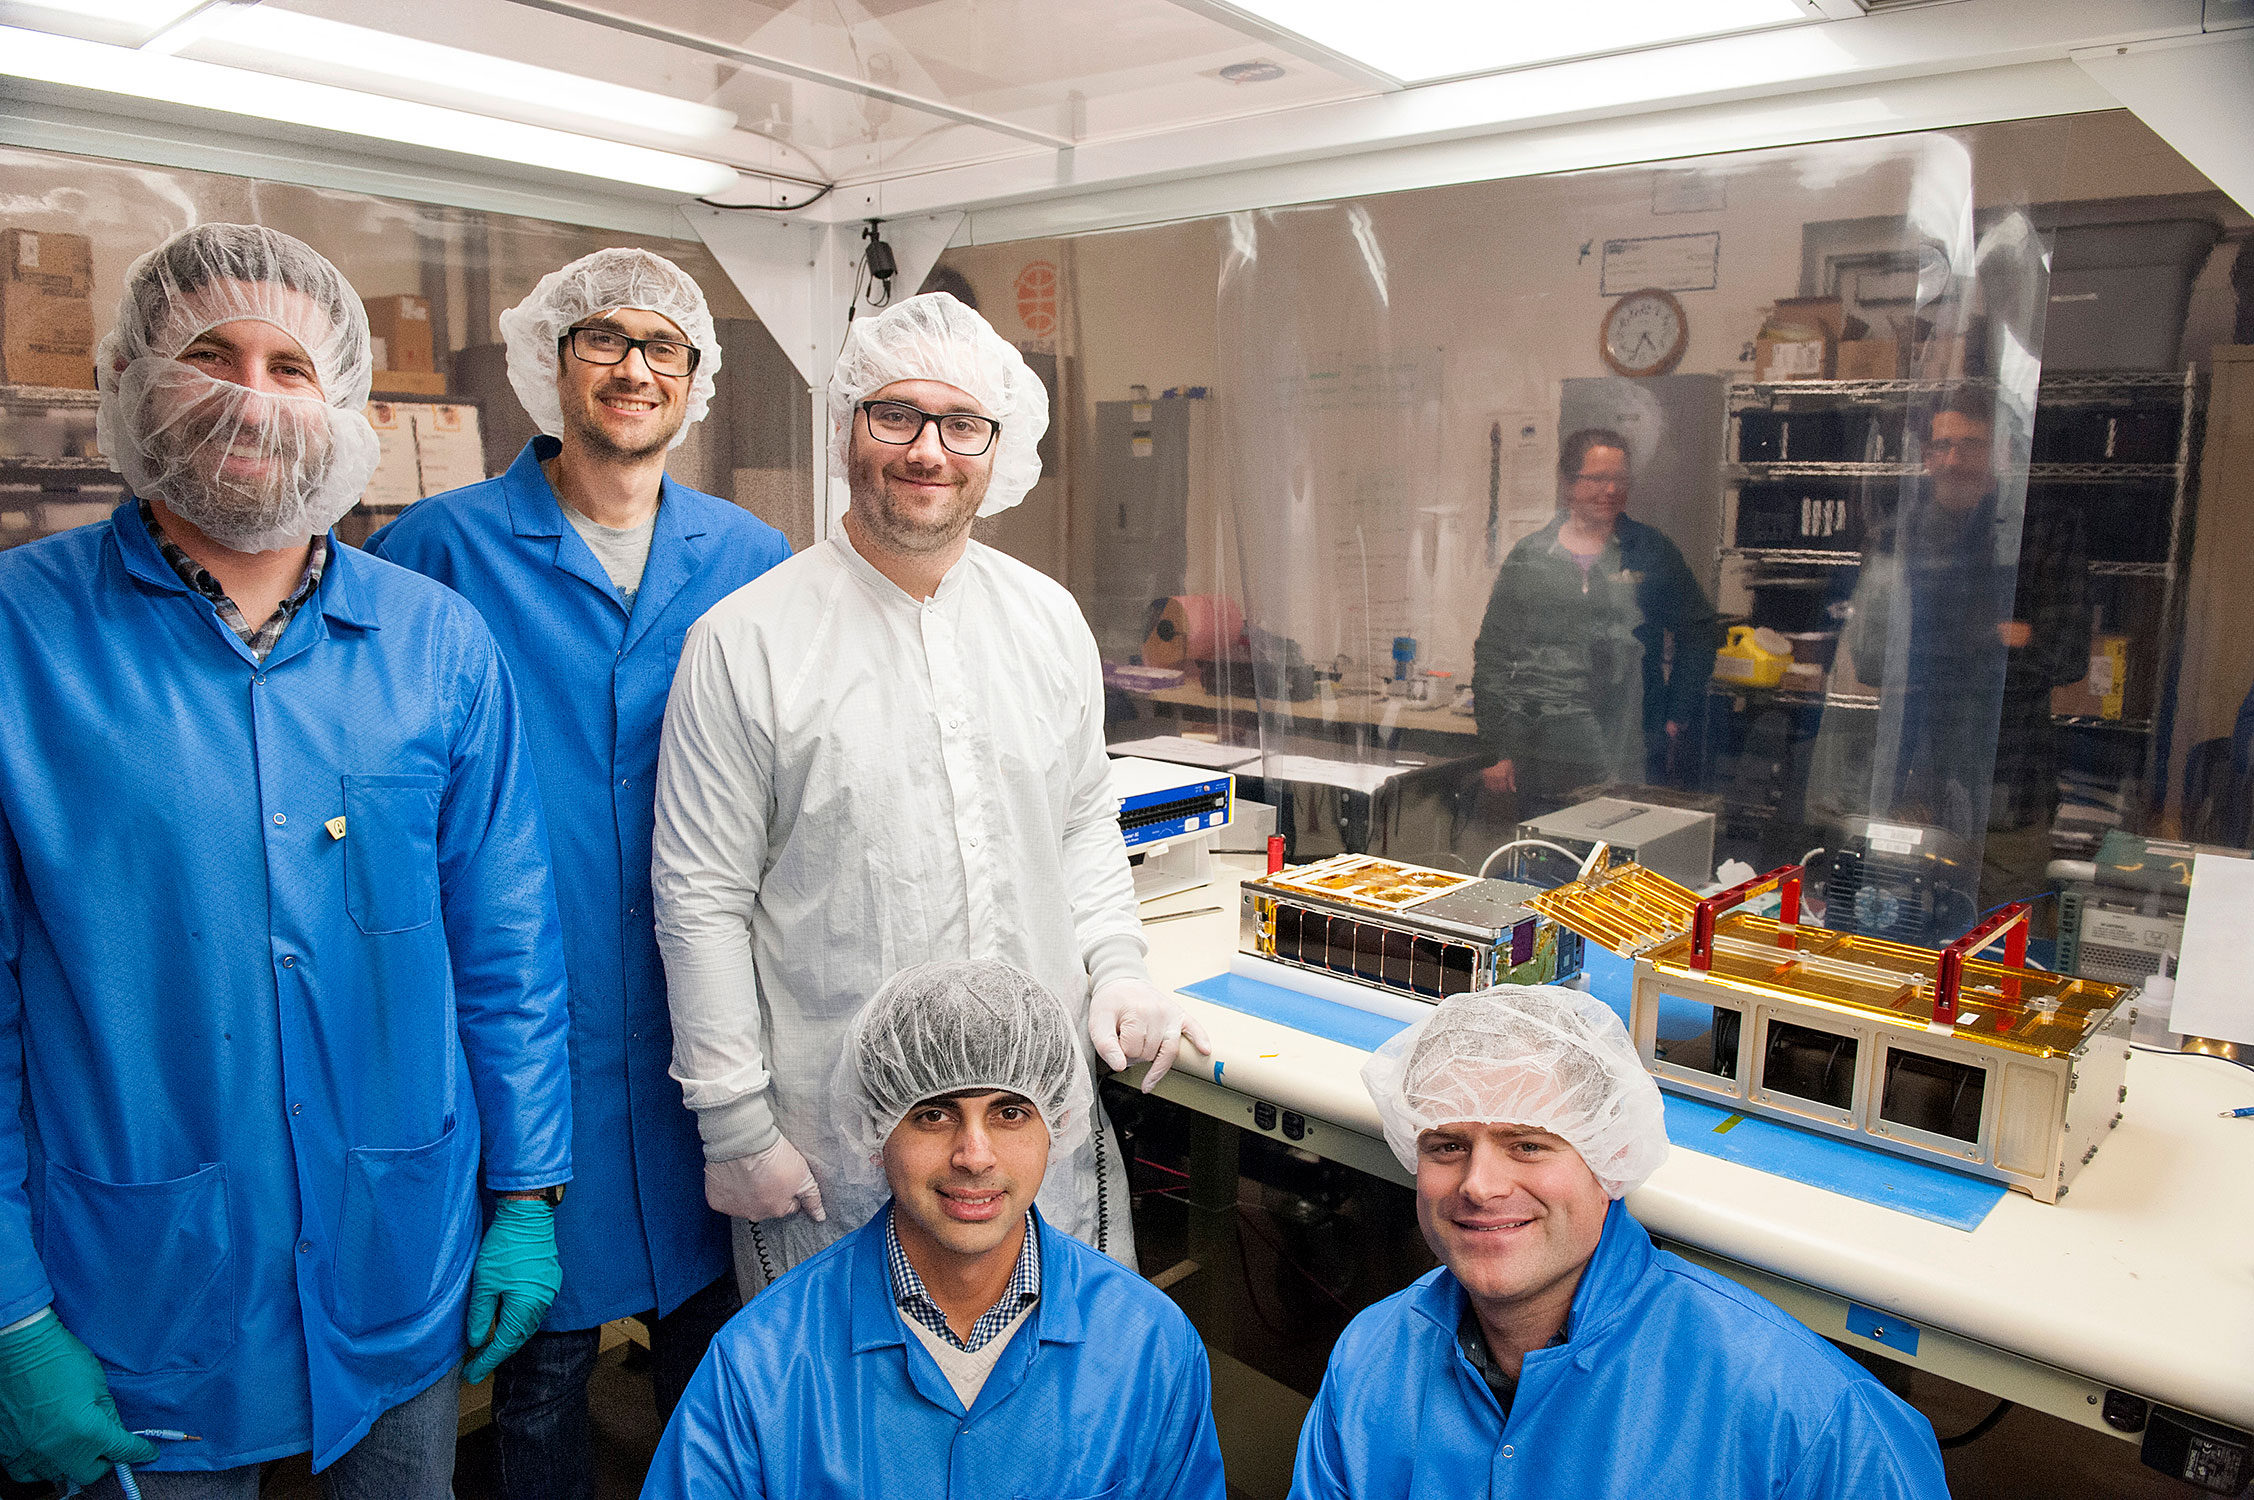 A team of engineers assisted in integrating the MarCO CubeSats into their deployment boxes on March 2-3, 2018. Standing from left, Justin Carnahan, a Tyvak mission manager and Cal Poly alumnus, and the Jet Propulsion Laboratory's Danny Forgett, a thermal systems engineer, and Joel Steinkraus, MarCO lead mechanical engineer; kneeling are (left) Vidur Kaushish, another mission manager at Tyvak Nanosatellite Systems, and Cal Poly aeronautical engineer Dave Pignatelli.